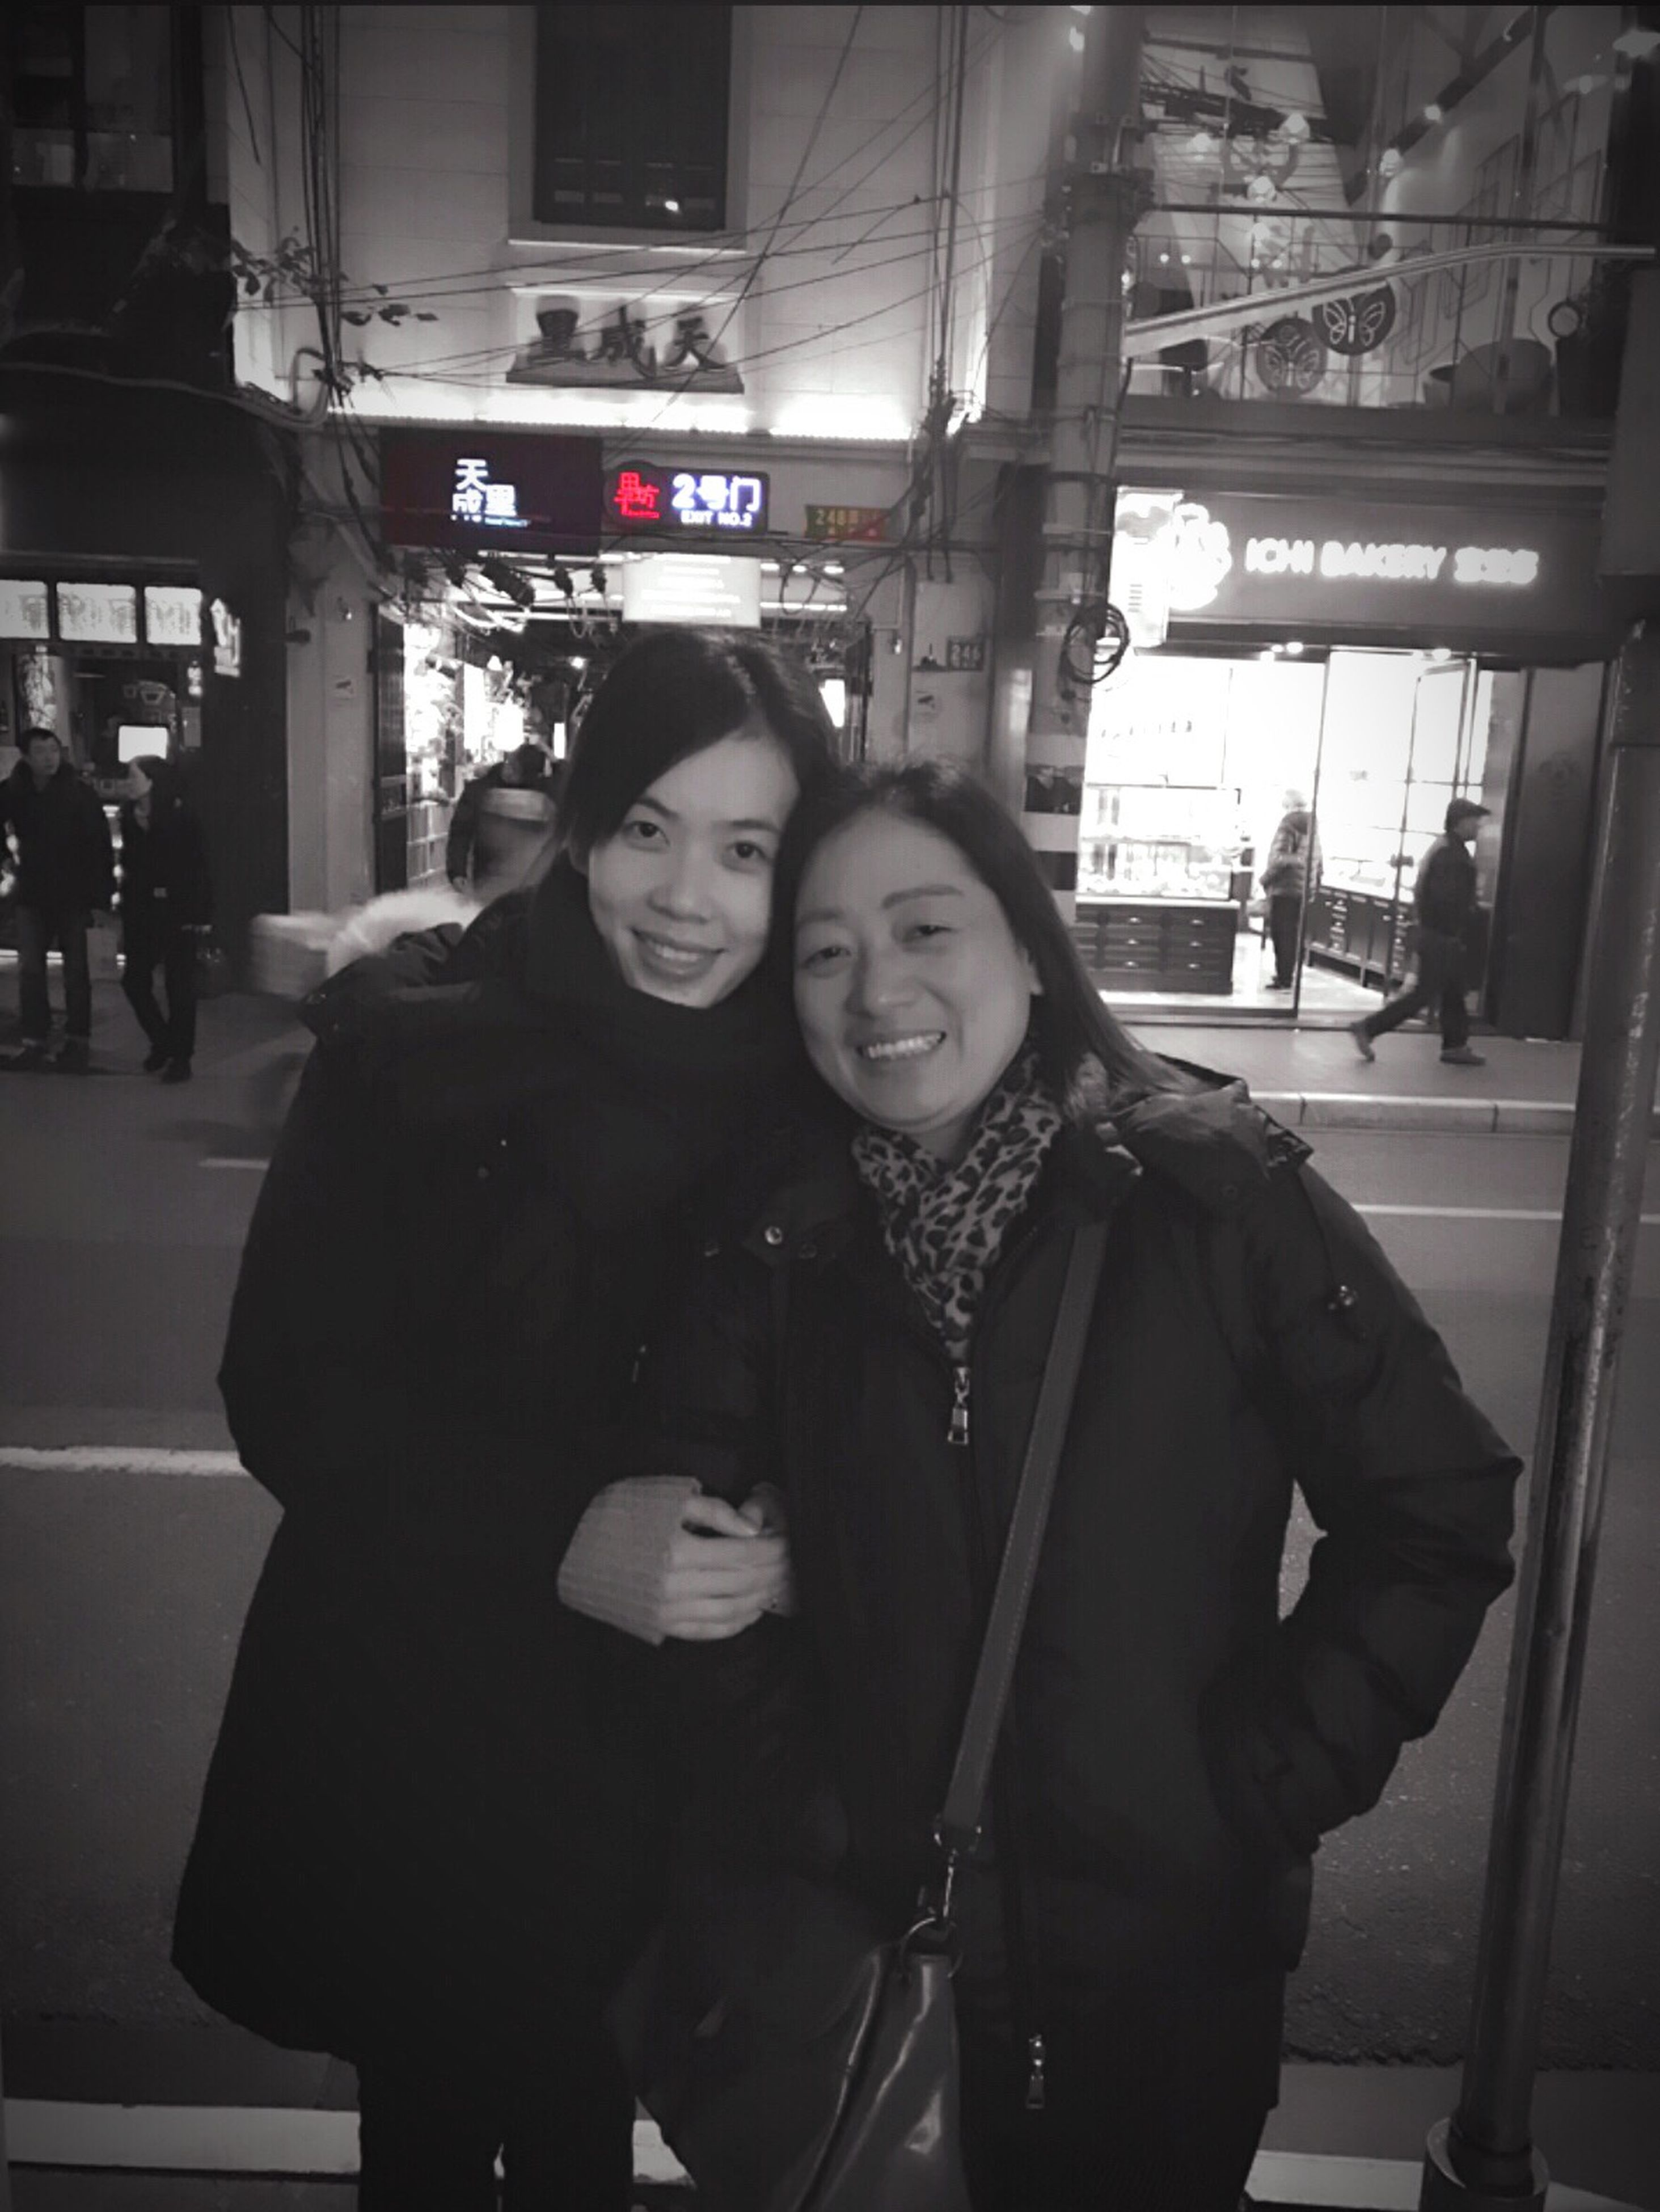 two people, smiling, women, portrait, young women, heterosexual couple, adults only, looking at camera, friendship, happiness, couple - relationship, young adult, city, togetherness, standing, people, adult, passenger, real people, night, men, bonding, public transportation, commuter, outdoors, railroad station platform, warm clothing, well-dressed